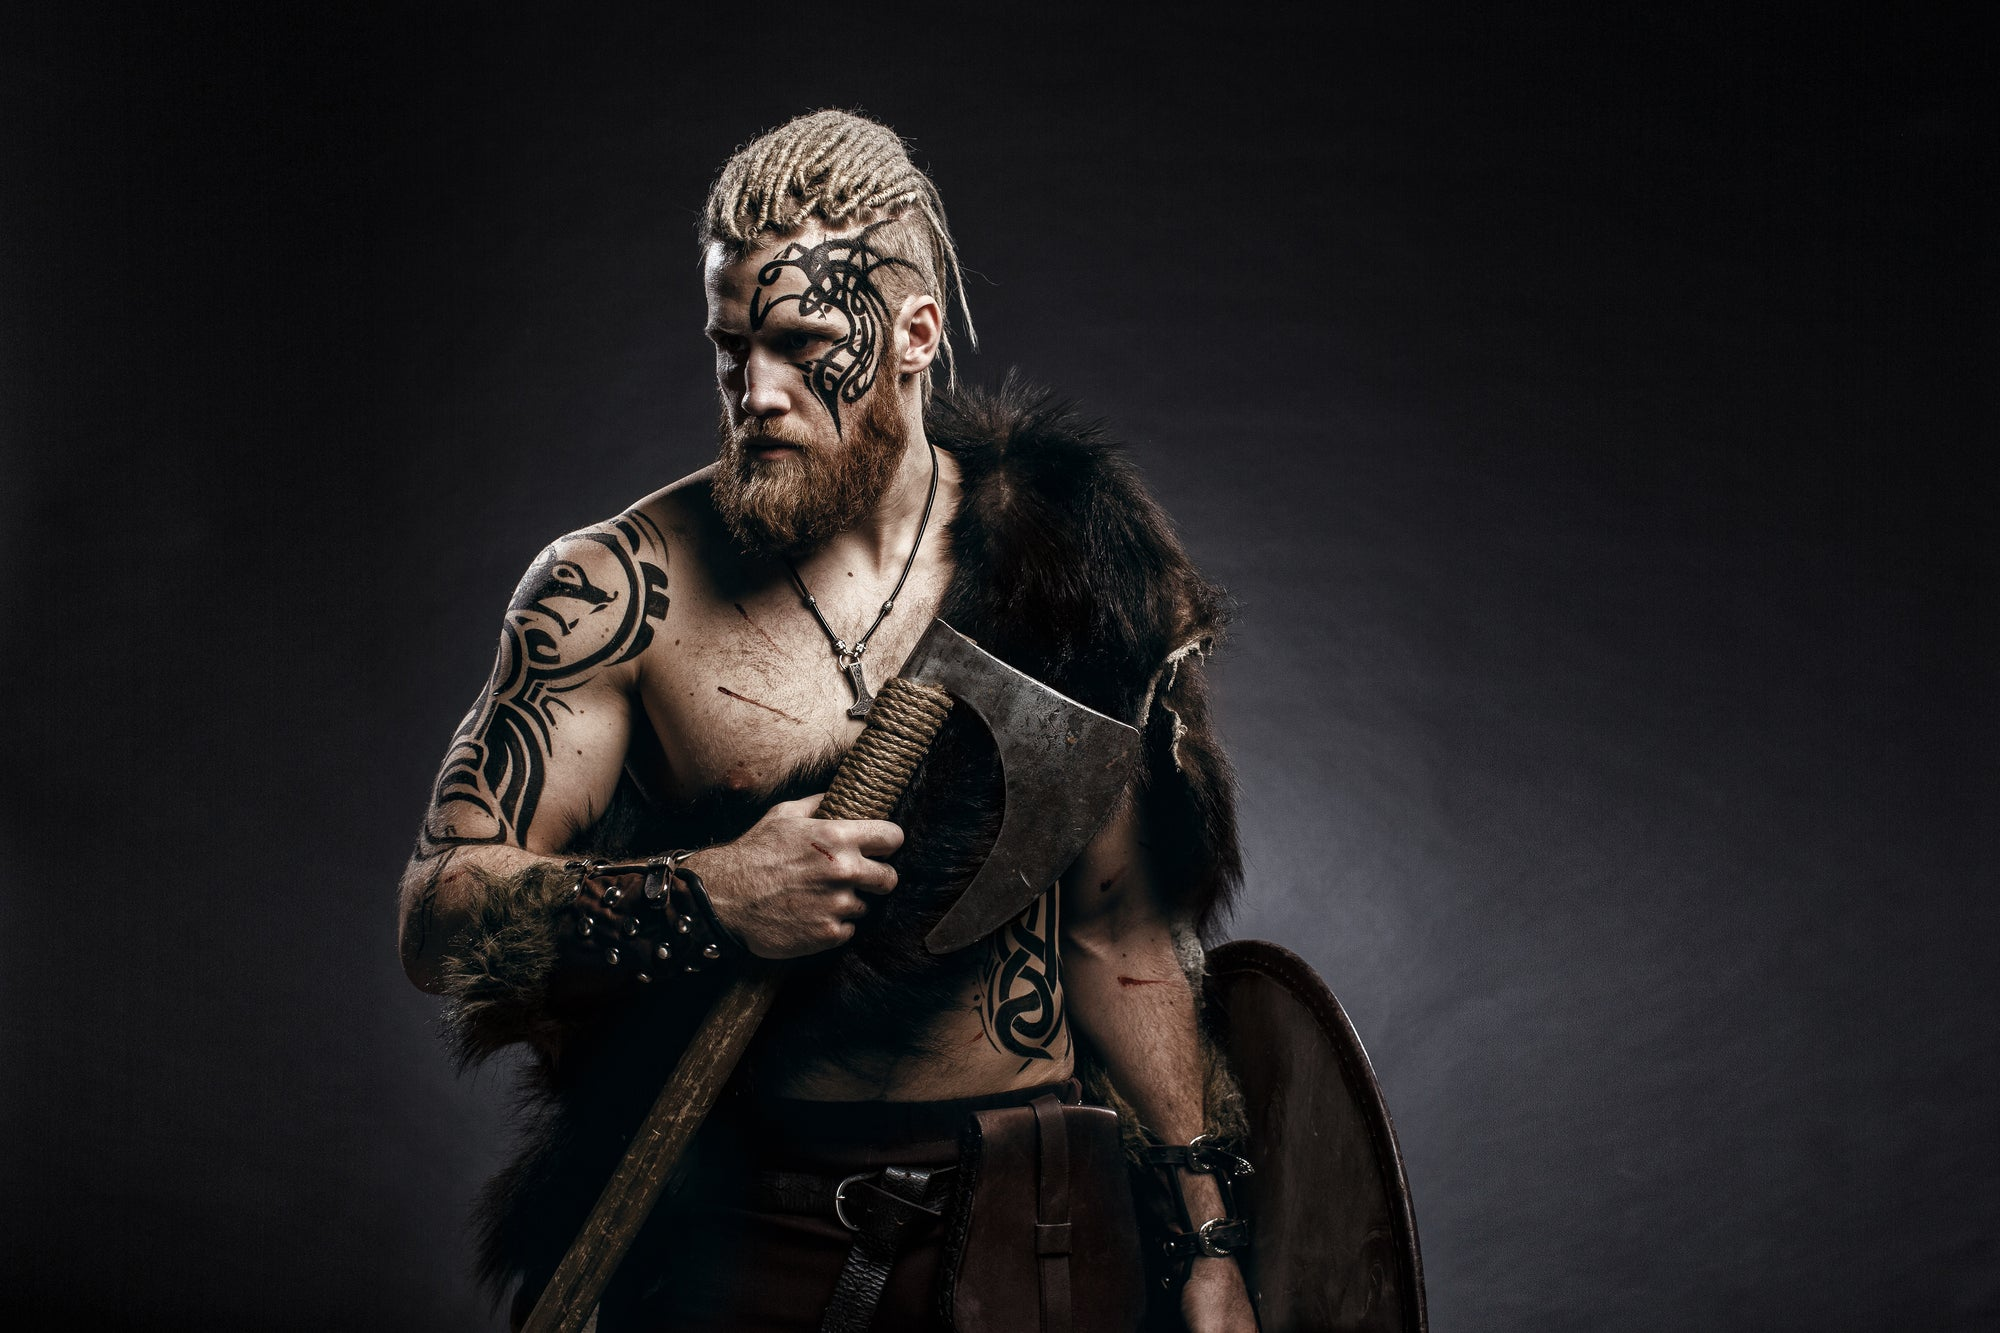 The Viking Workout for Becoming a Berserker